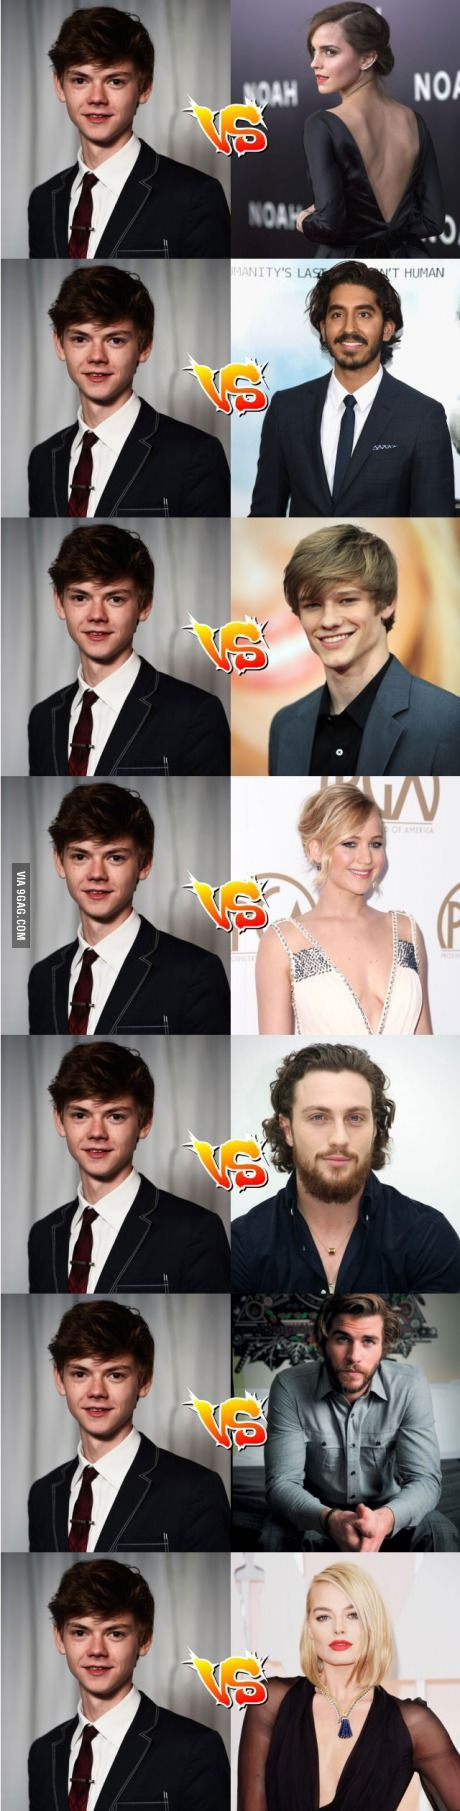 Thomas Brodie-Sangster with the same age actors. lol, this is absurd, does he have superpower?